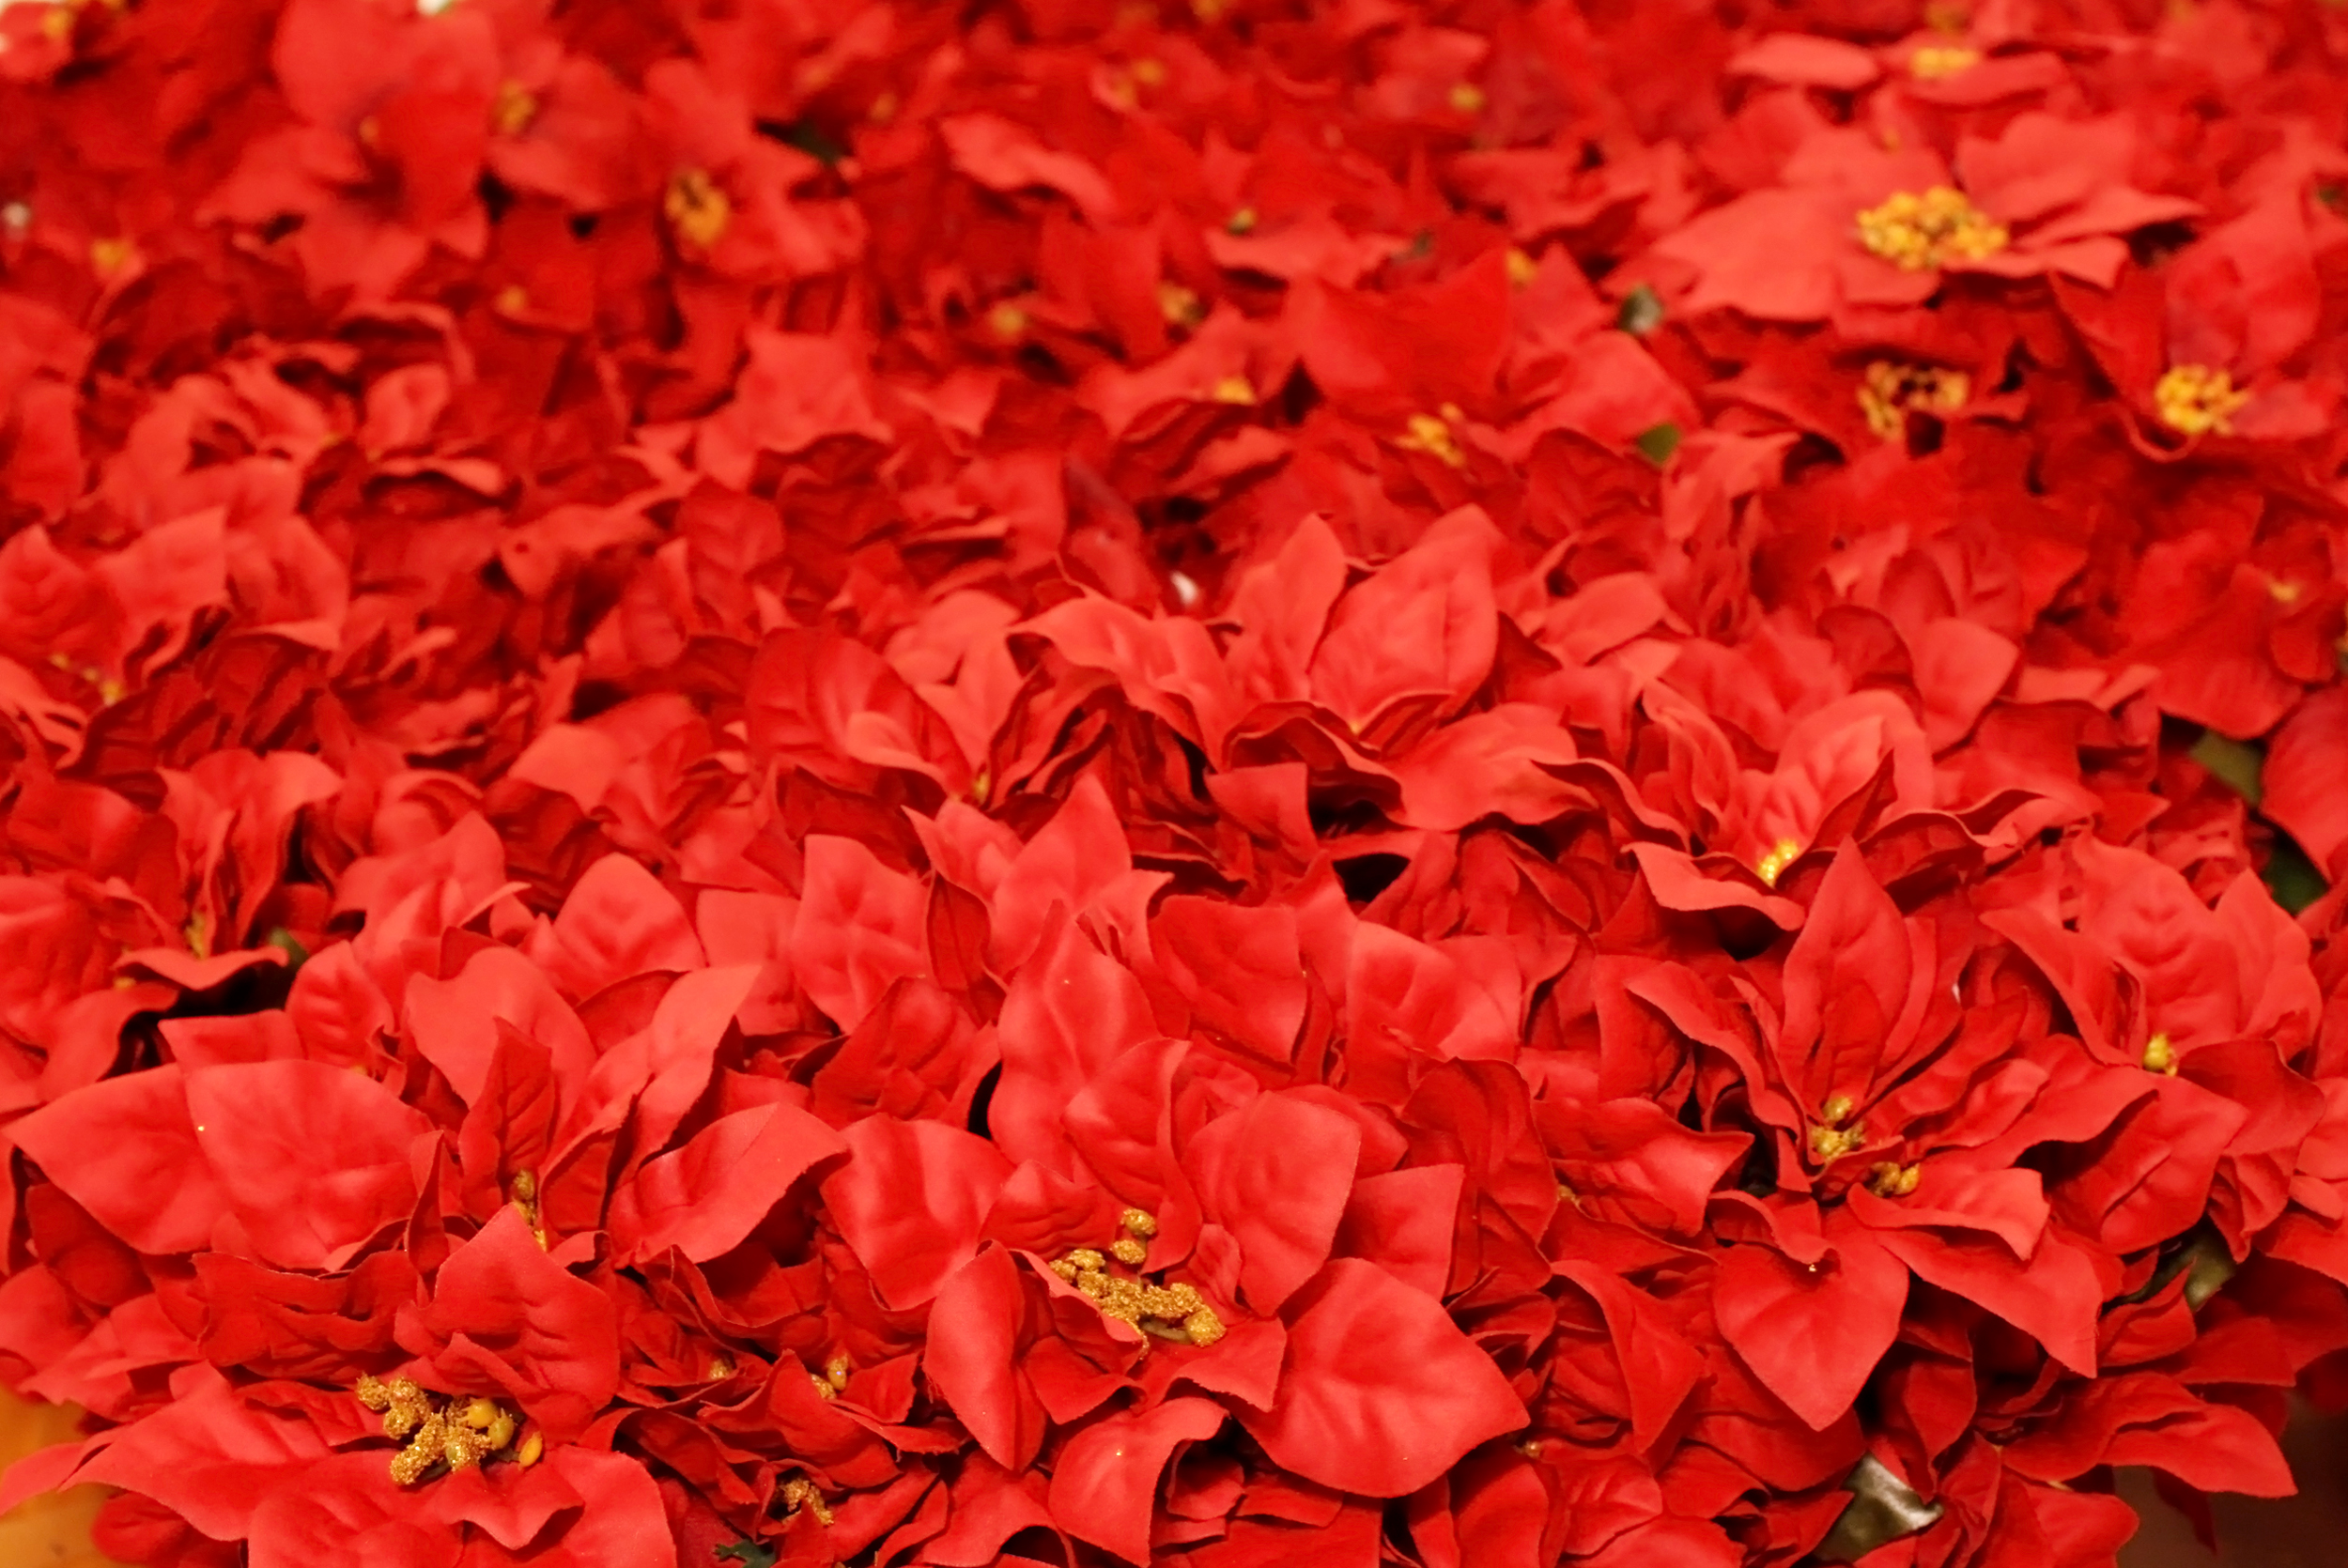 Red Christmas background, Artificial, Petals, Growth, Holiday, HQ Photo